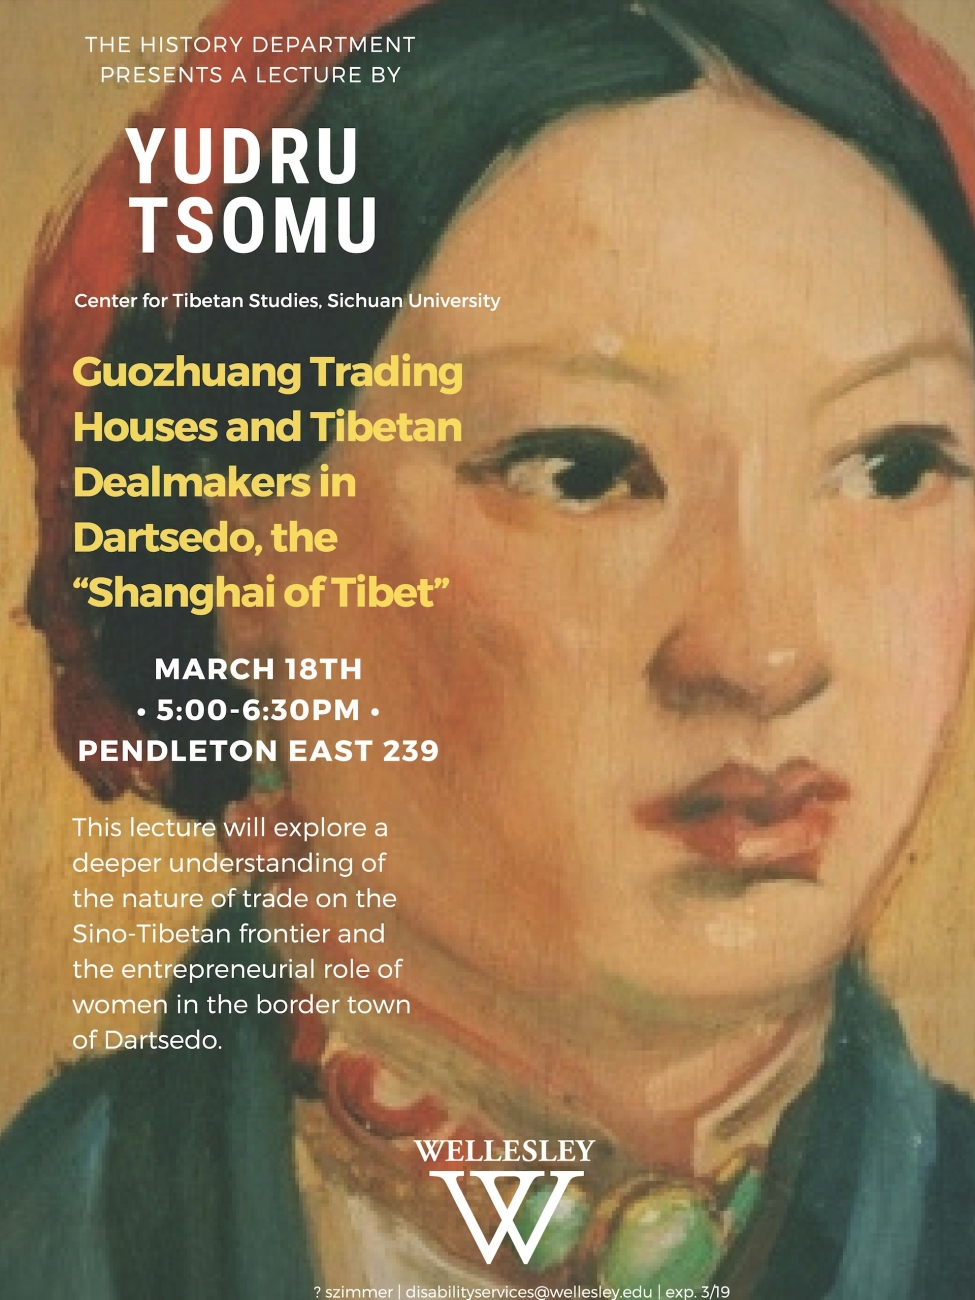 "Guozhuang Trading Houses and Tibetan Dealmakers in Dartsedo, the ""Shanghai of Tibet,"" lecture by Yudru Tsomu (March 18, 2019, 5:00pm in Pendleton East 239)"